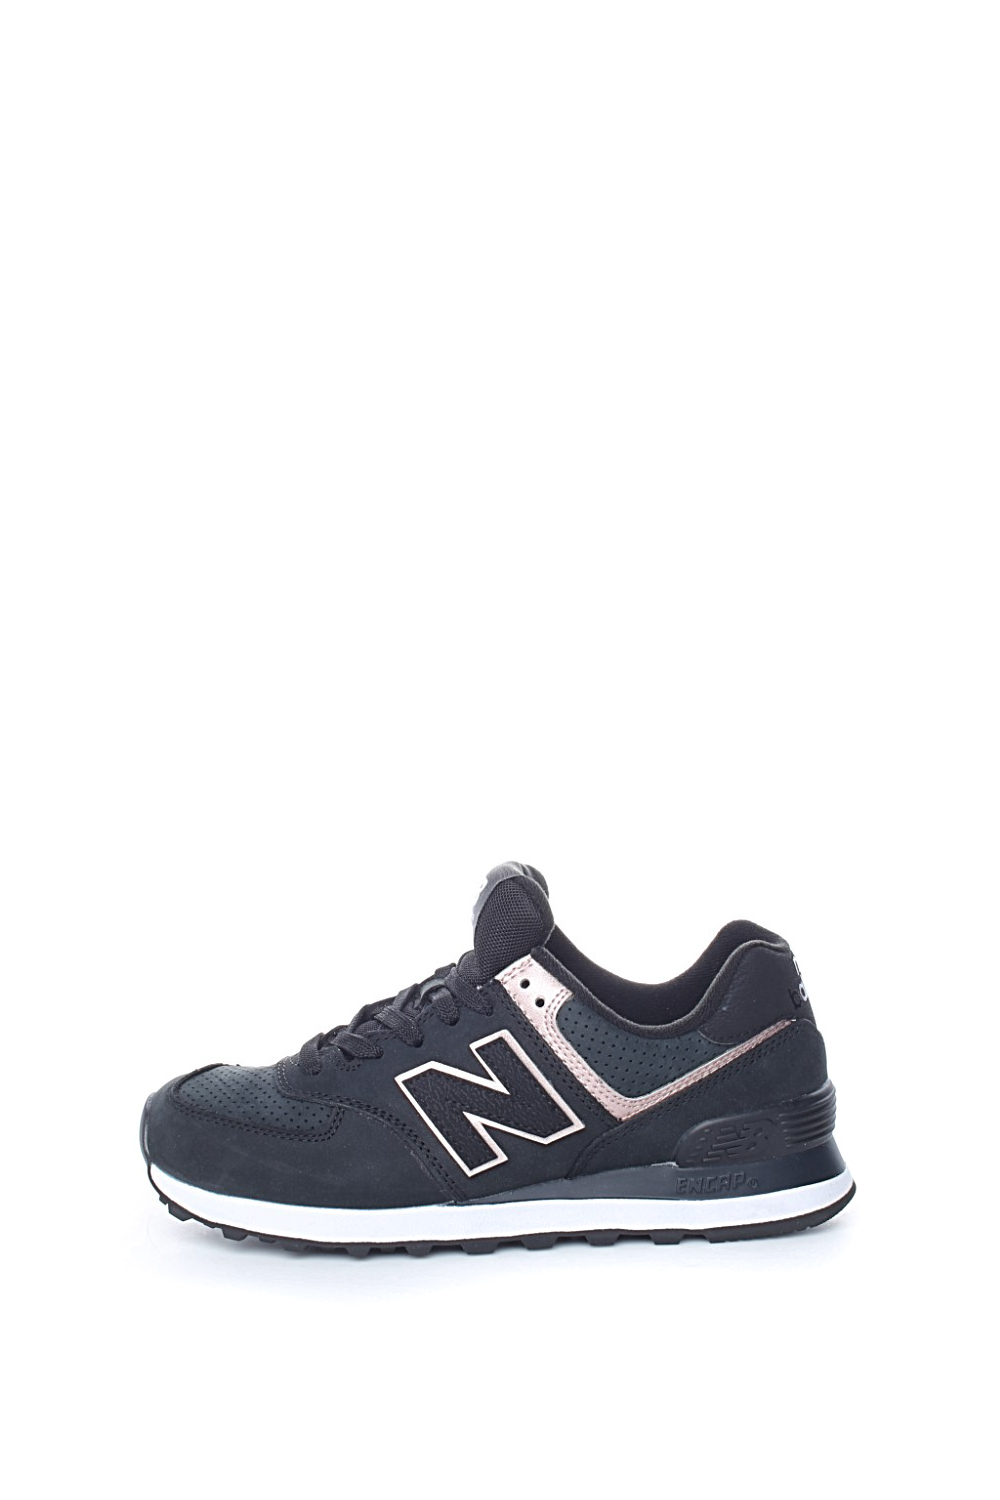 NEW BALANCE - Γυναικεία παπούτσια CLASSICS μαύρα - Roe Shoes Collection 2f892701734